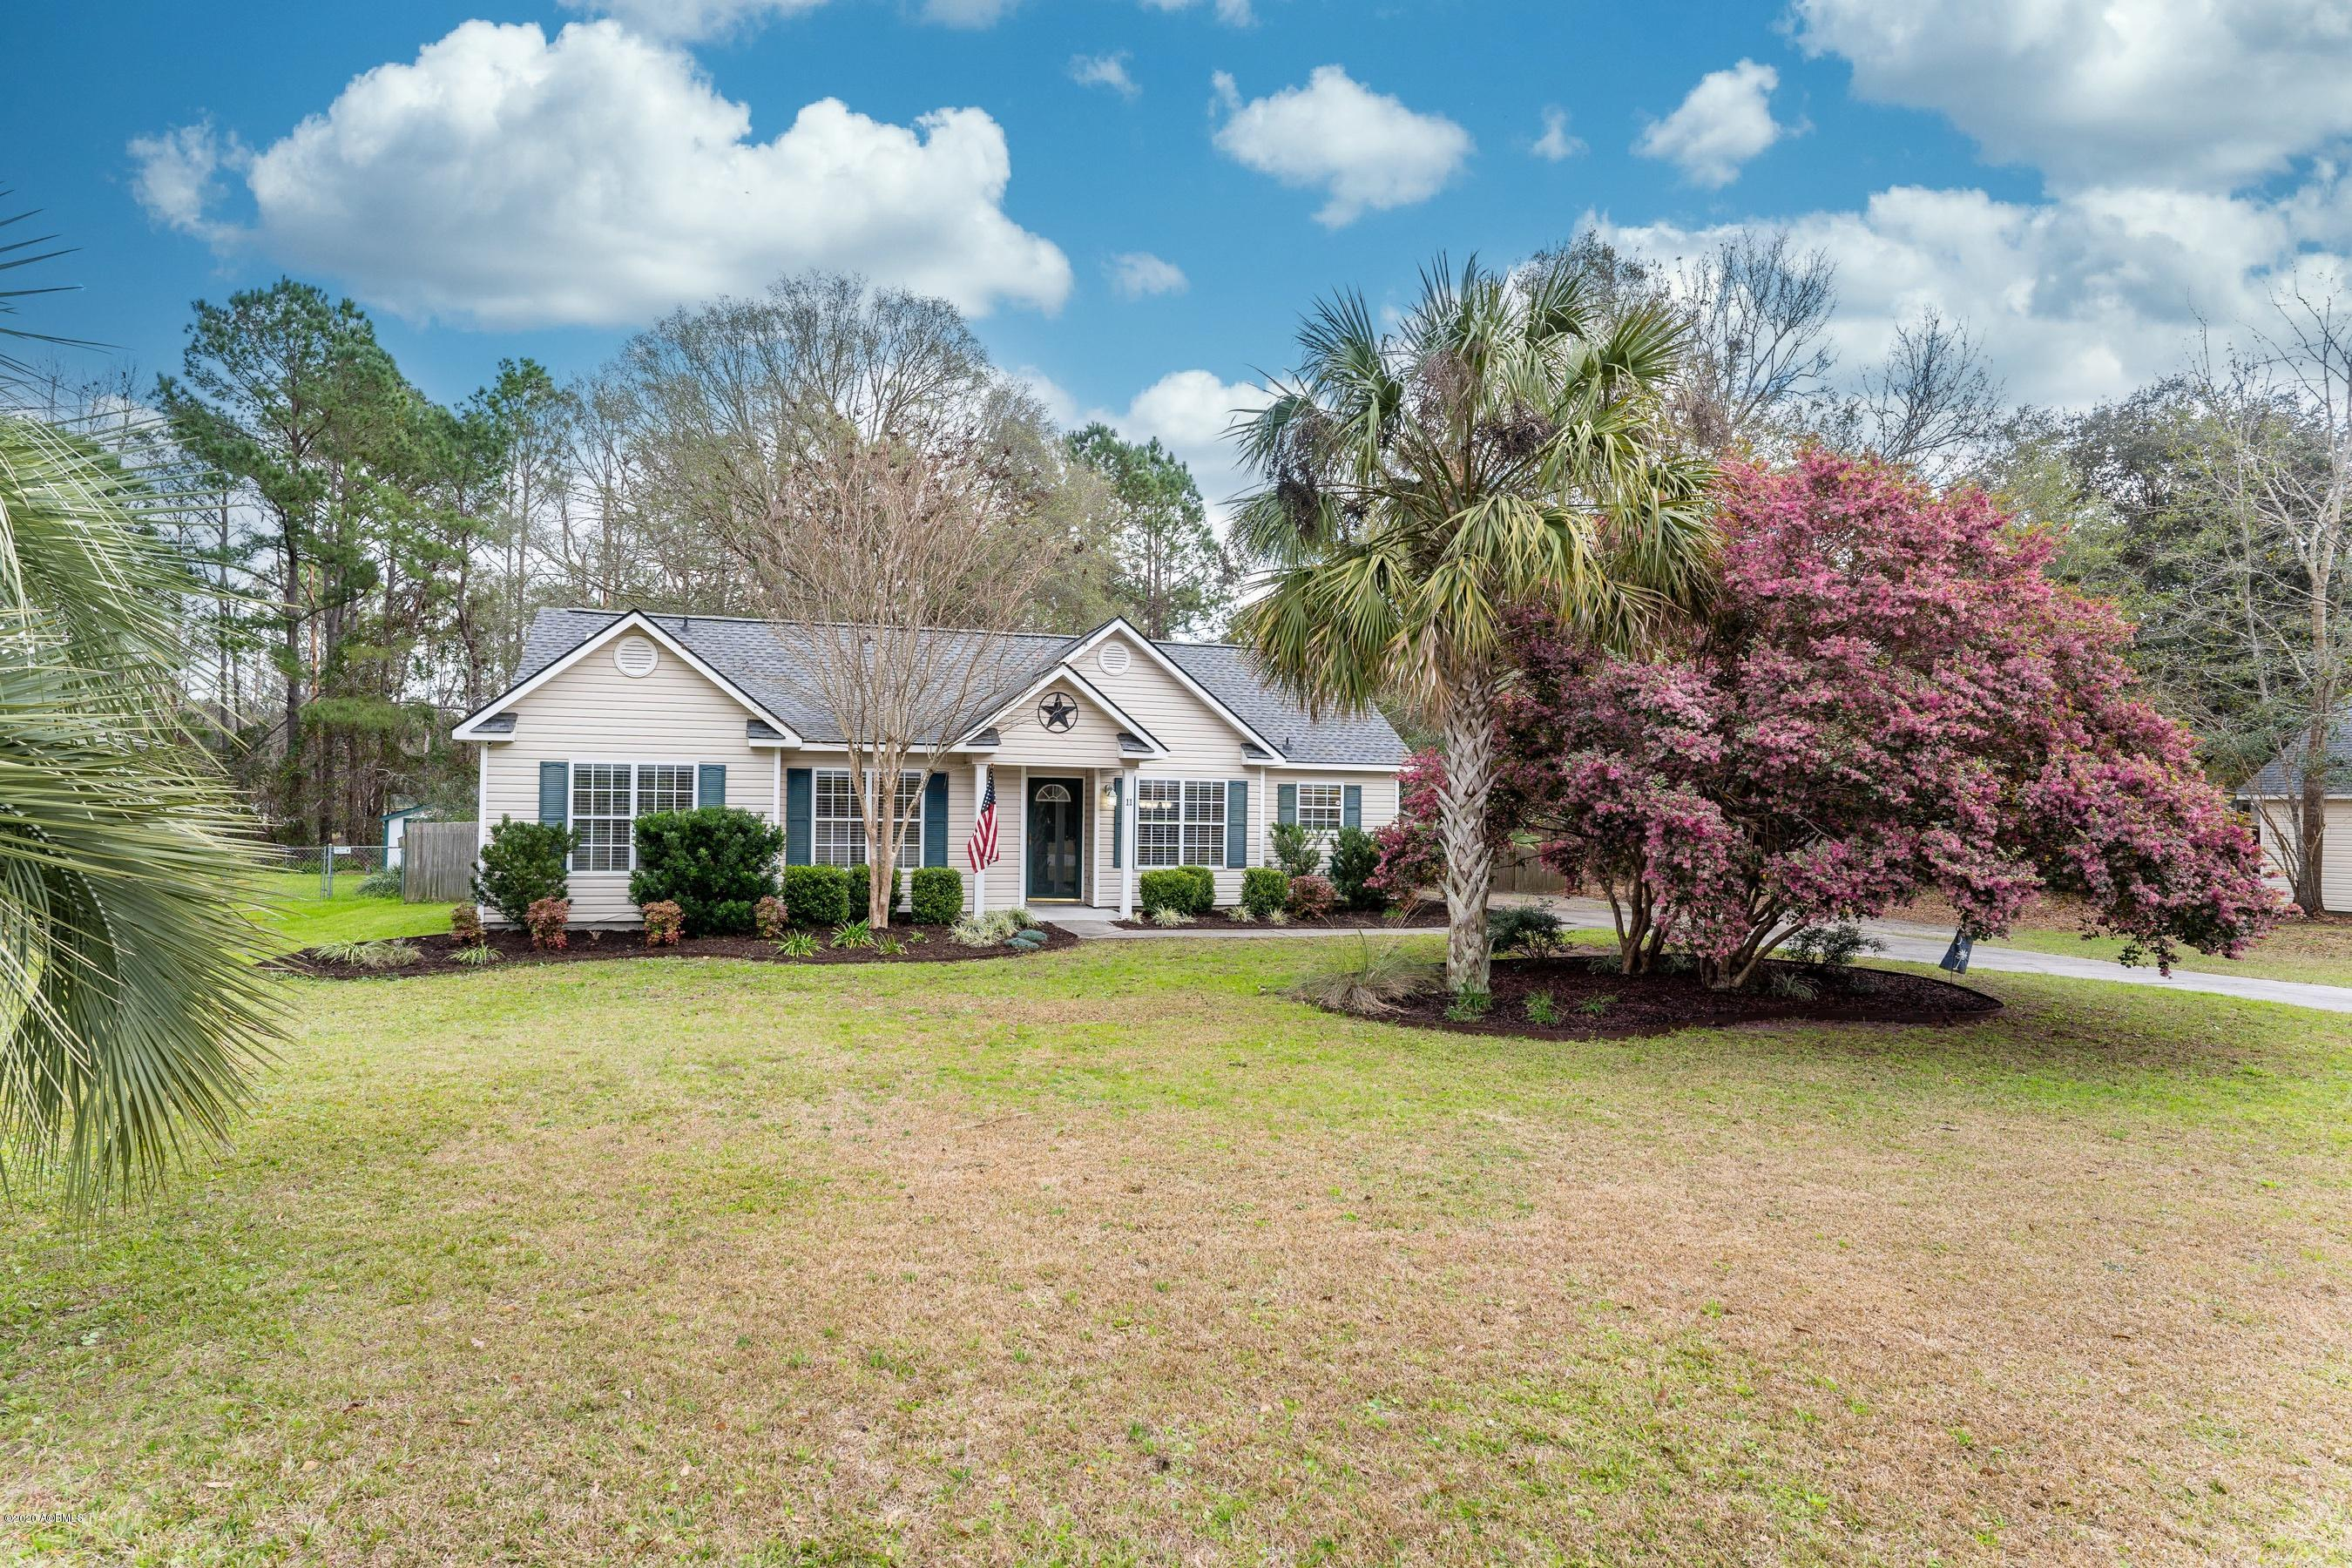 Photo of 11 Southern Magnolia Drive, Beaufort, SC 29907